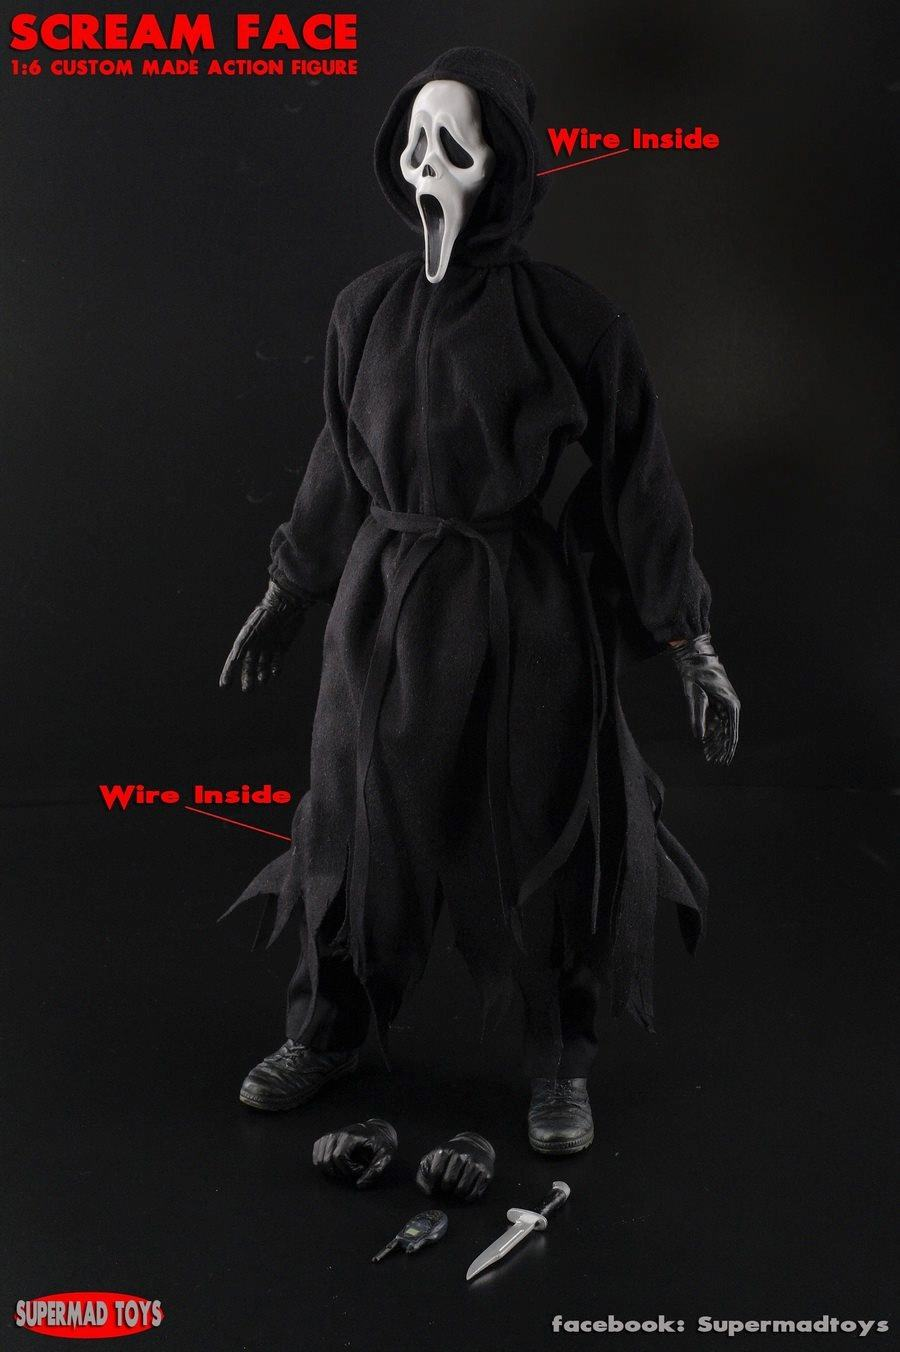 ghostface-scream-custom-made-action-figure-08